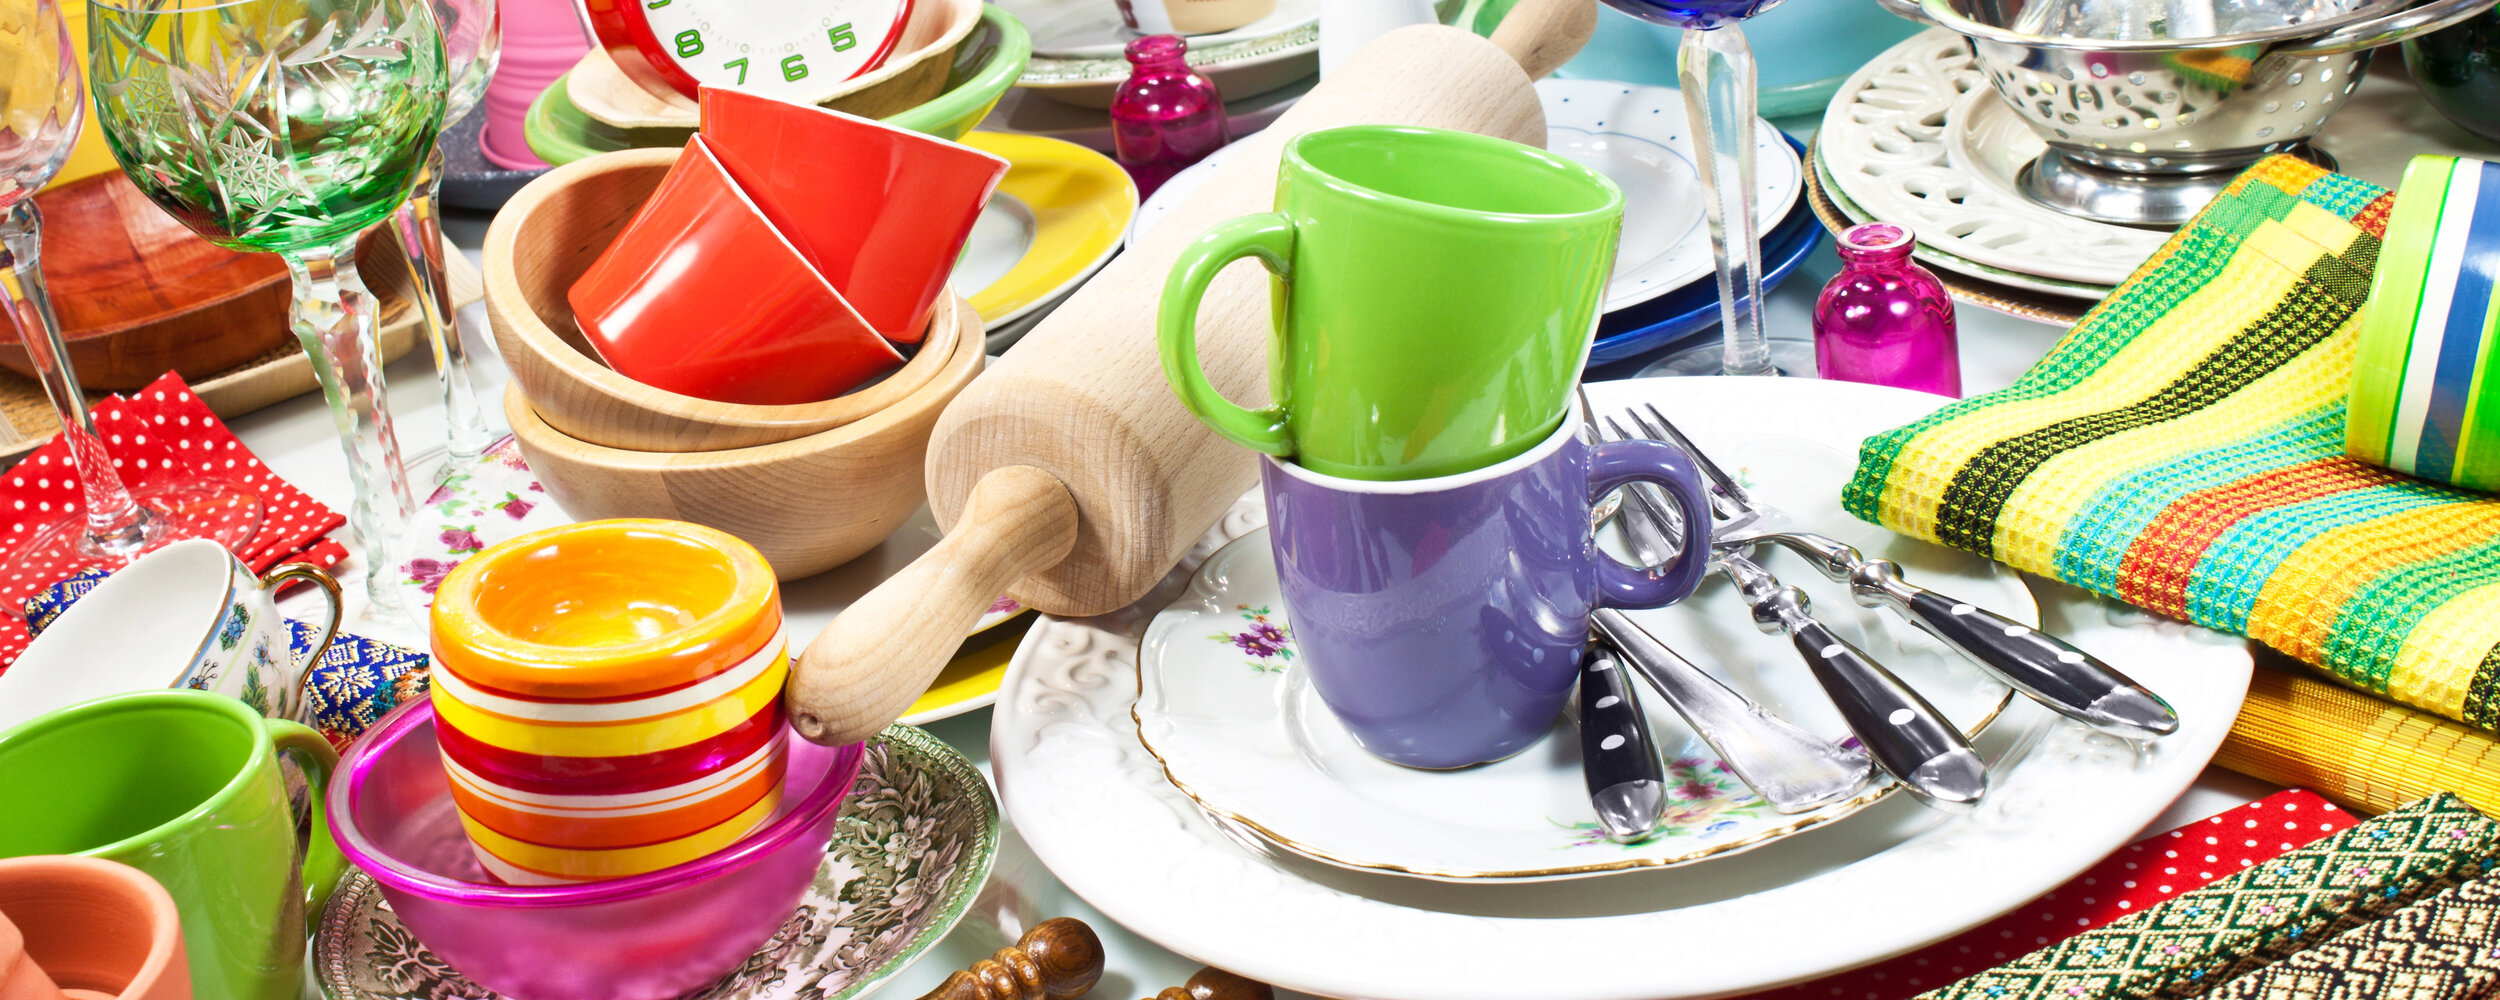 In New Mexico? Moving? Downsizing? Decluttering? We're here to help!